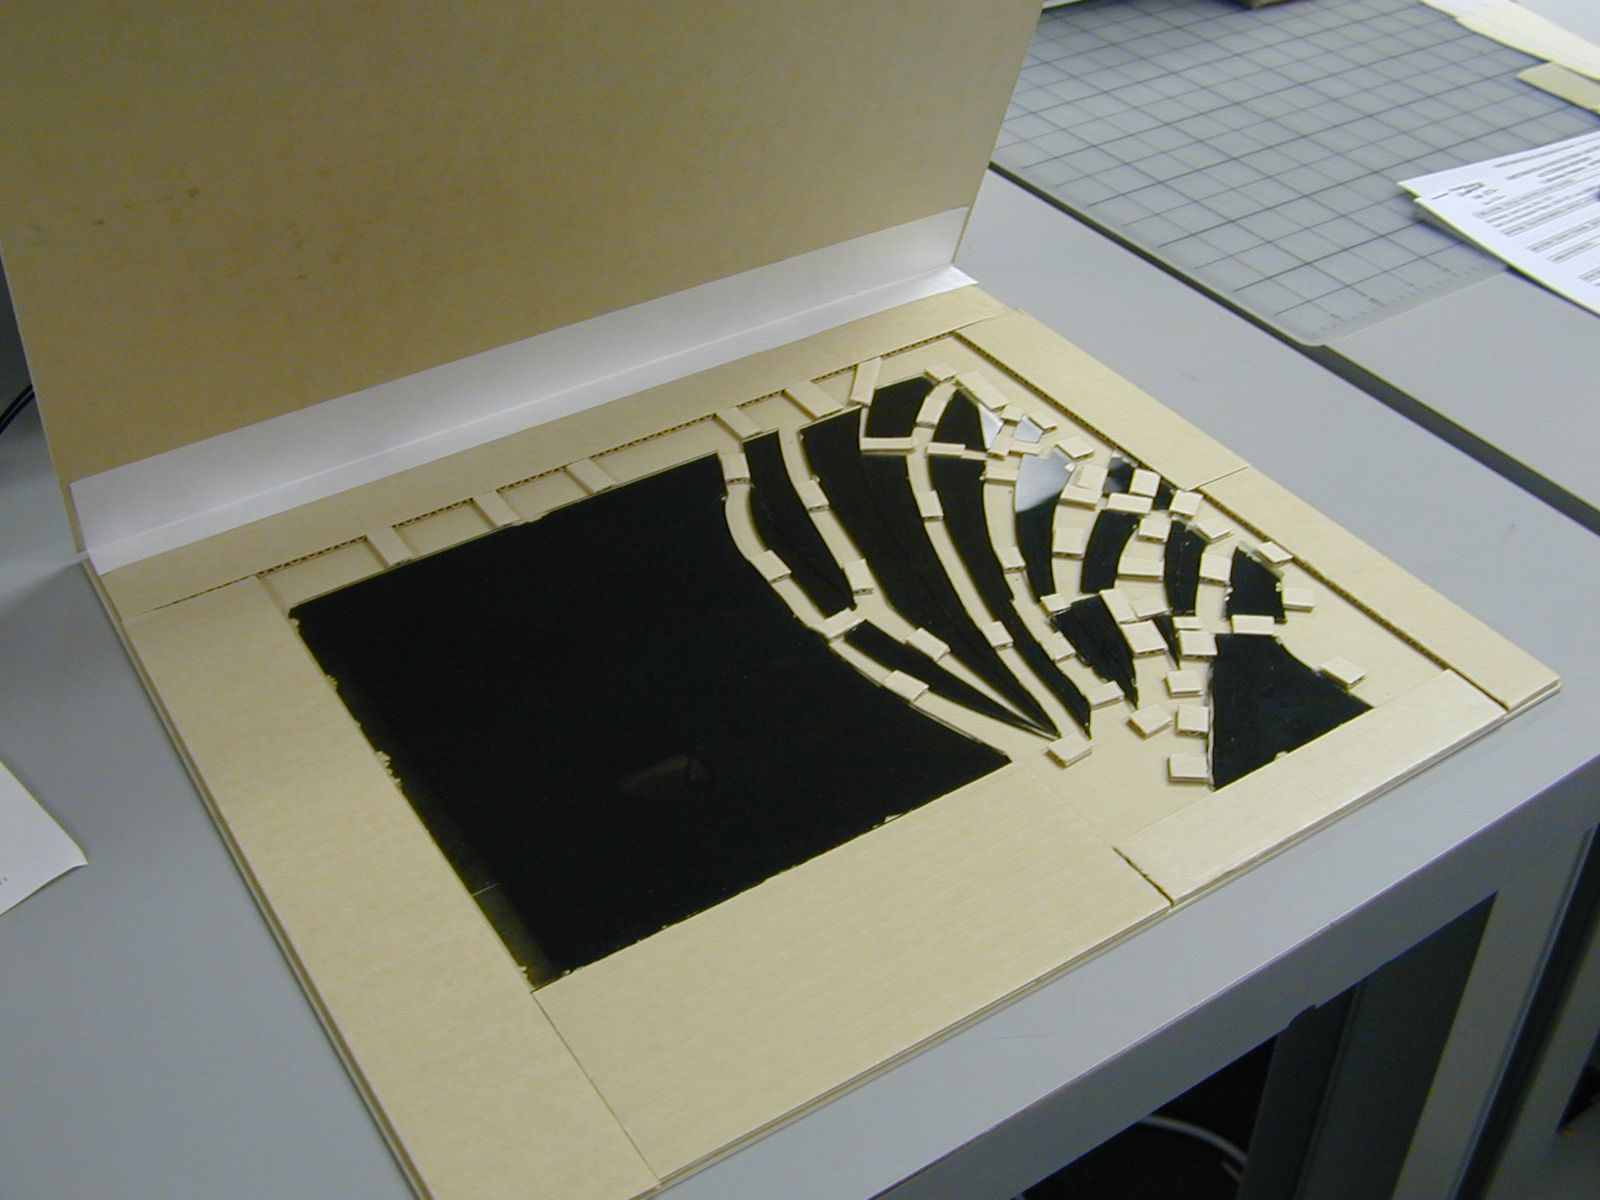 preservation matte holding broken glass-plate negative with foam core filling gaps from missing piec